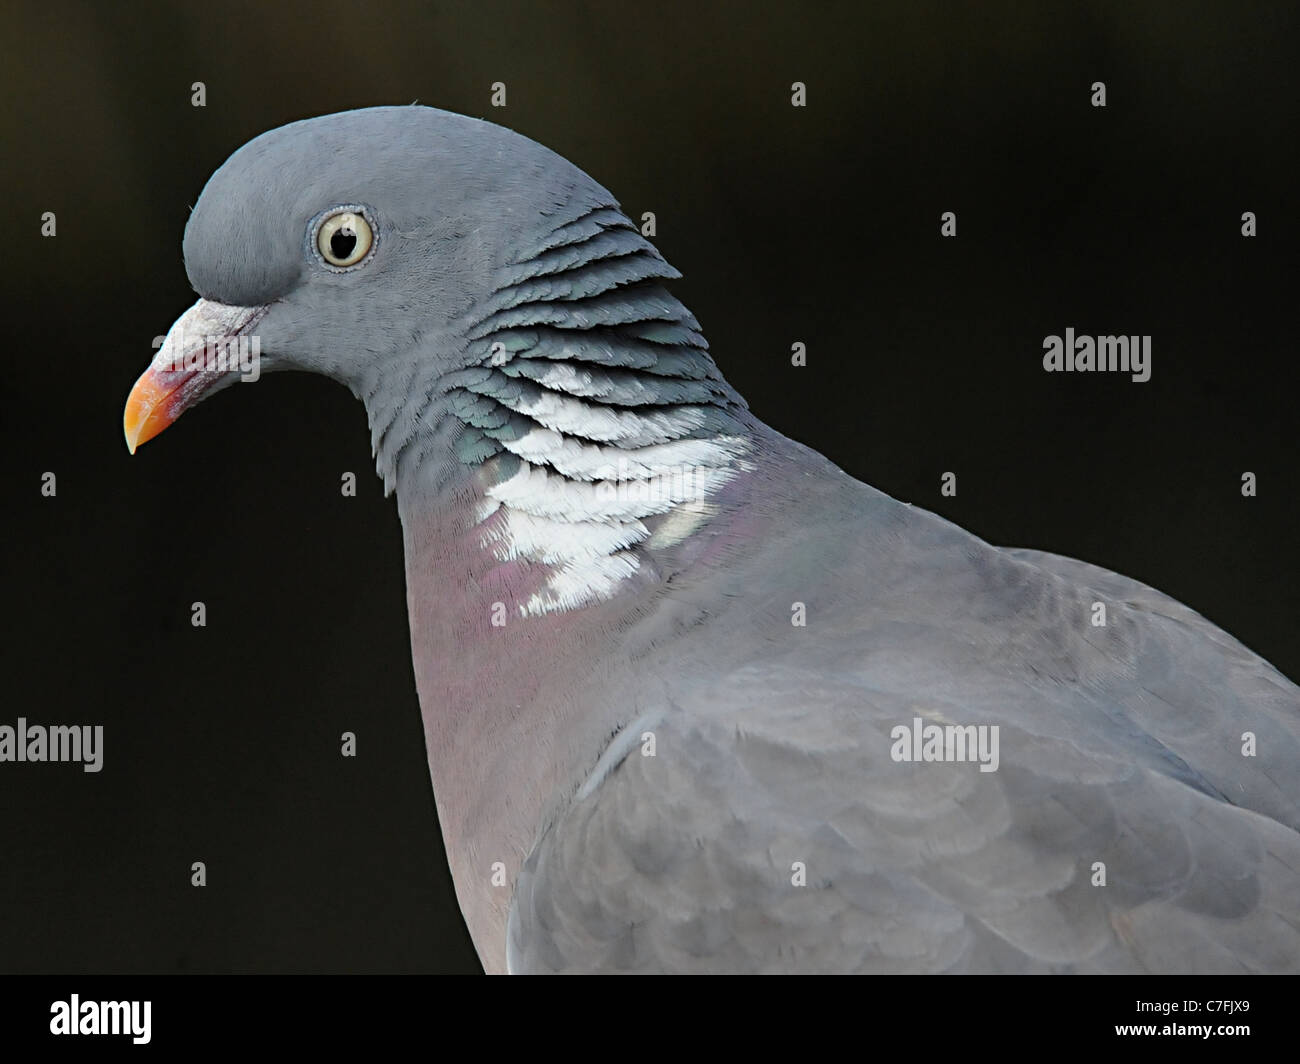 The head of a rock pigeon or rock dove - Stock Image